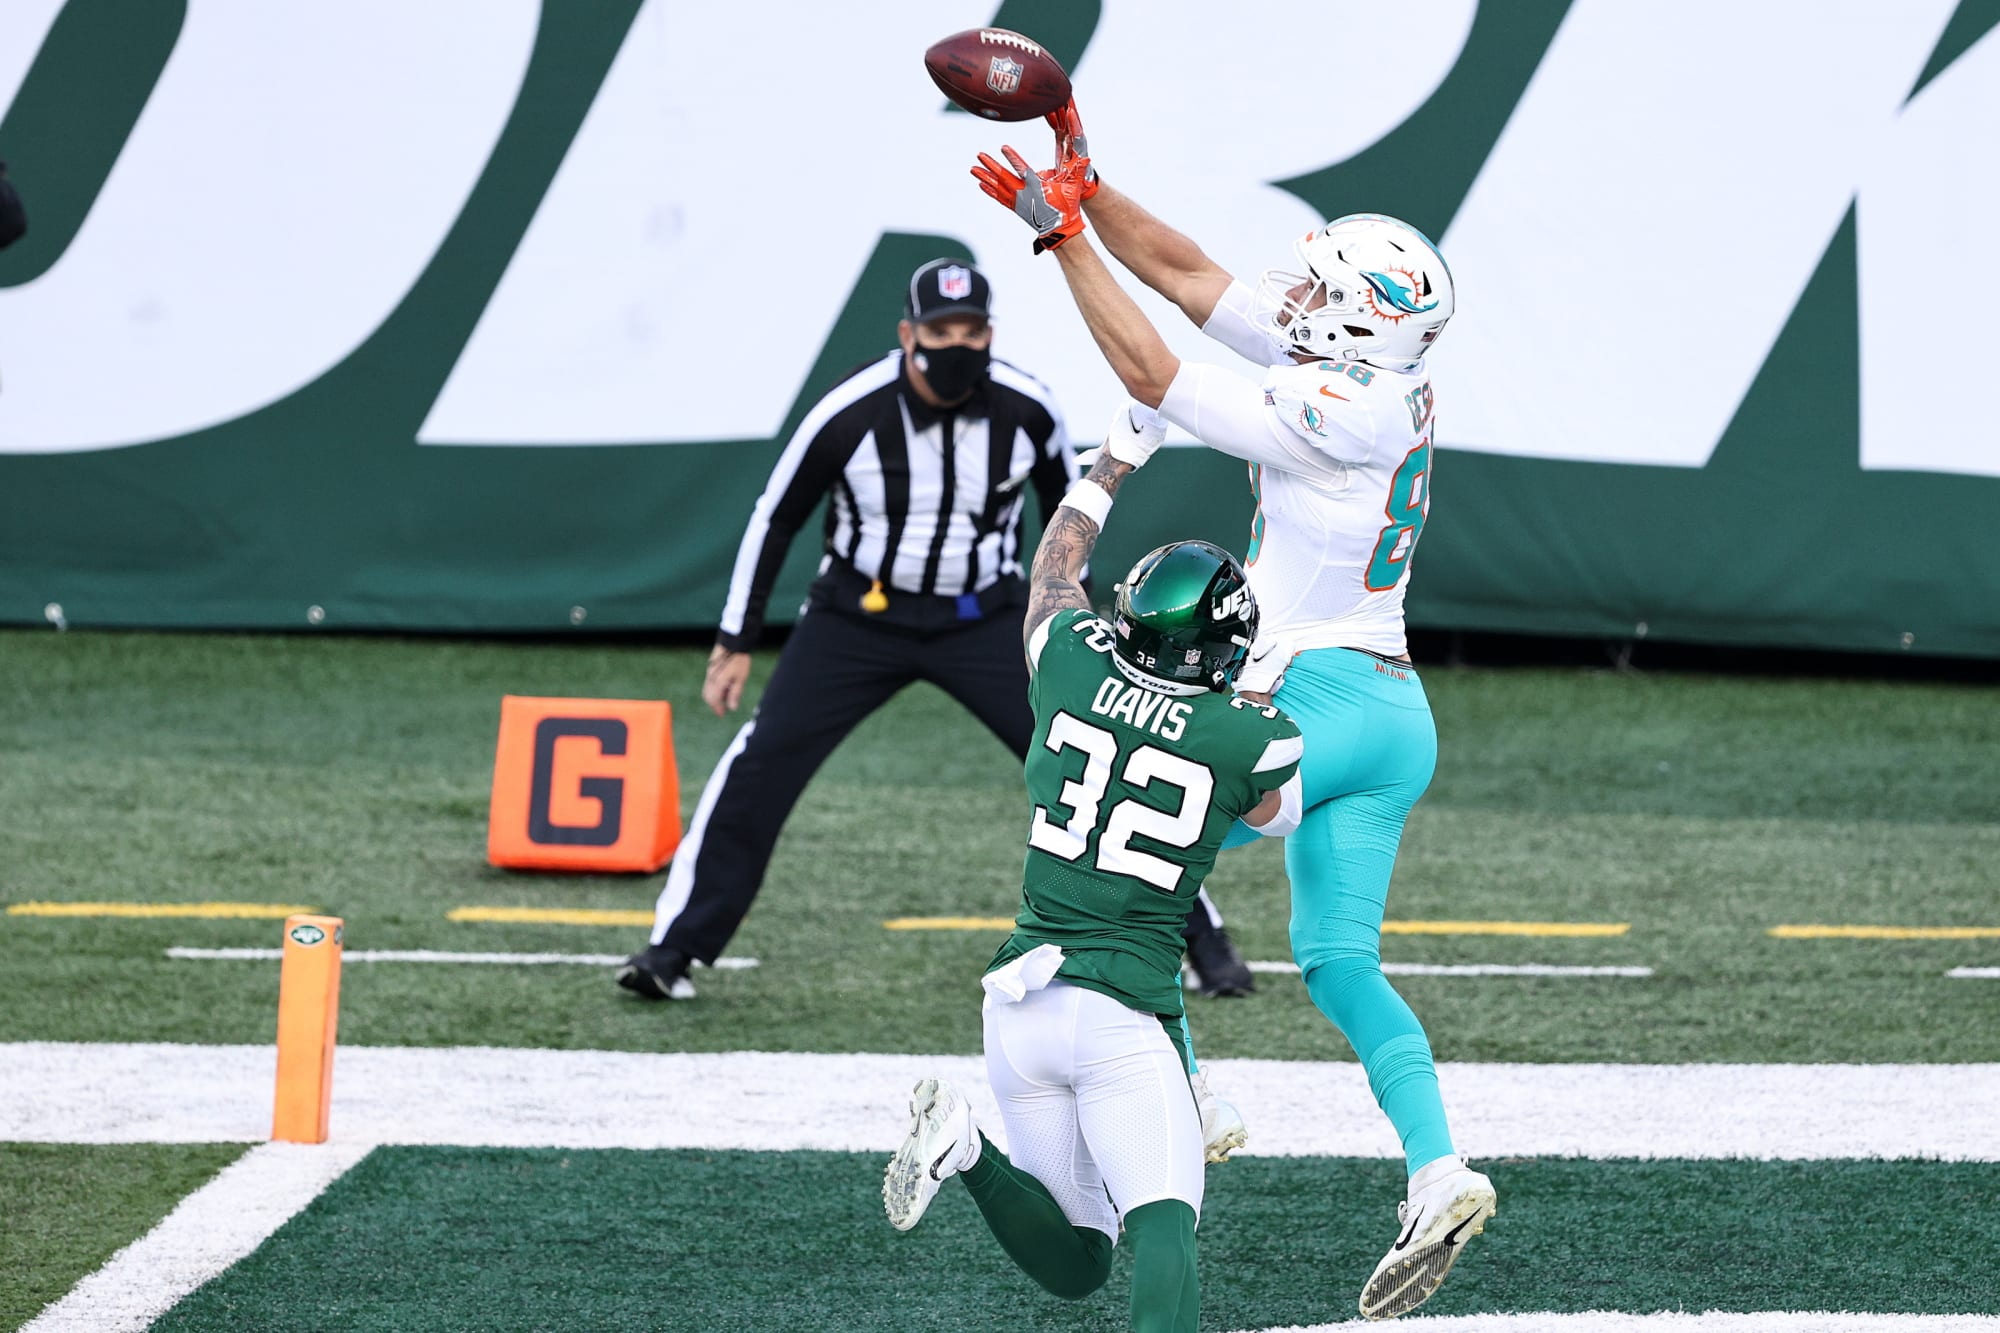 Miami Dolphins new offensive coordinator must fix this part of the offense